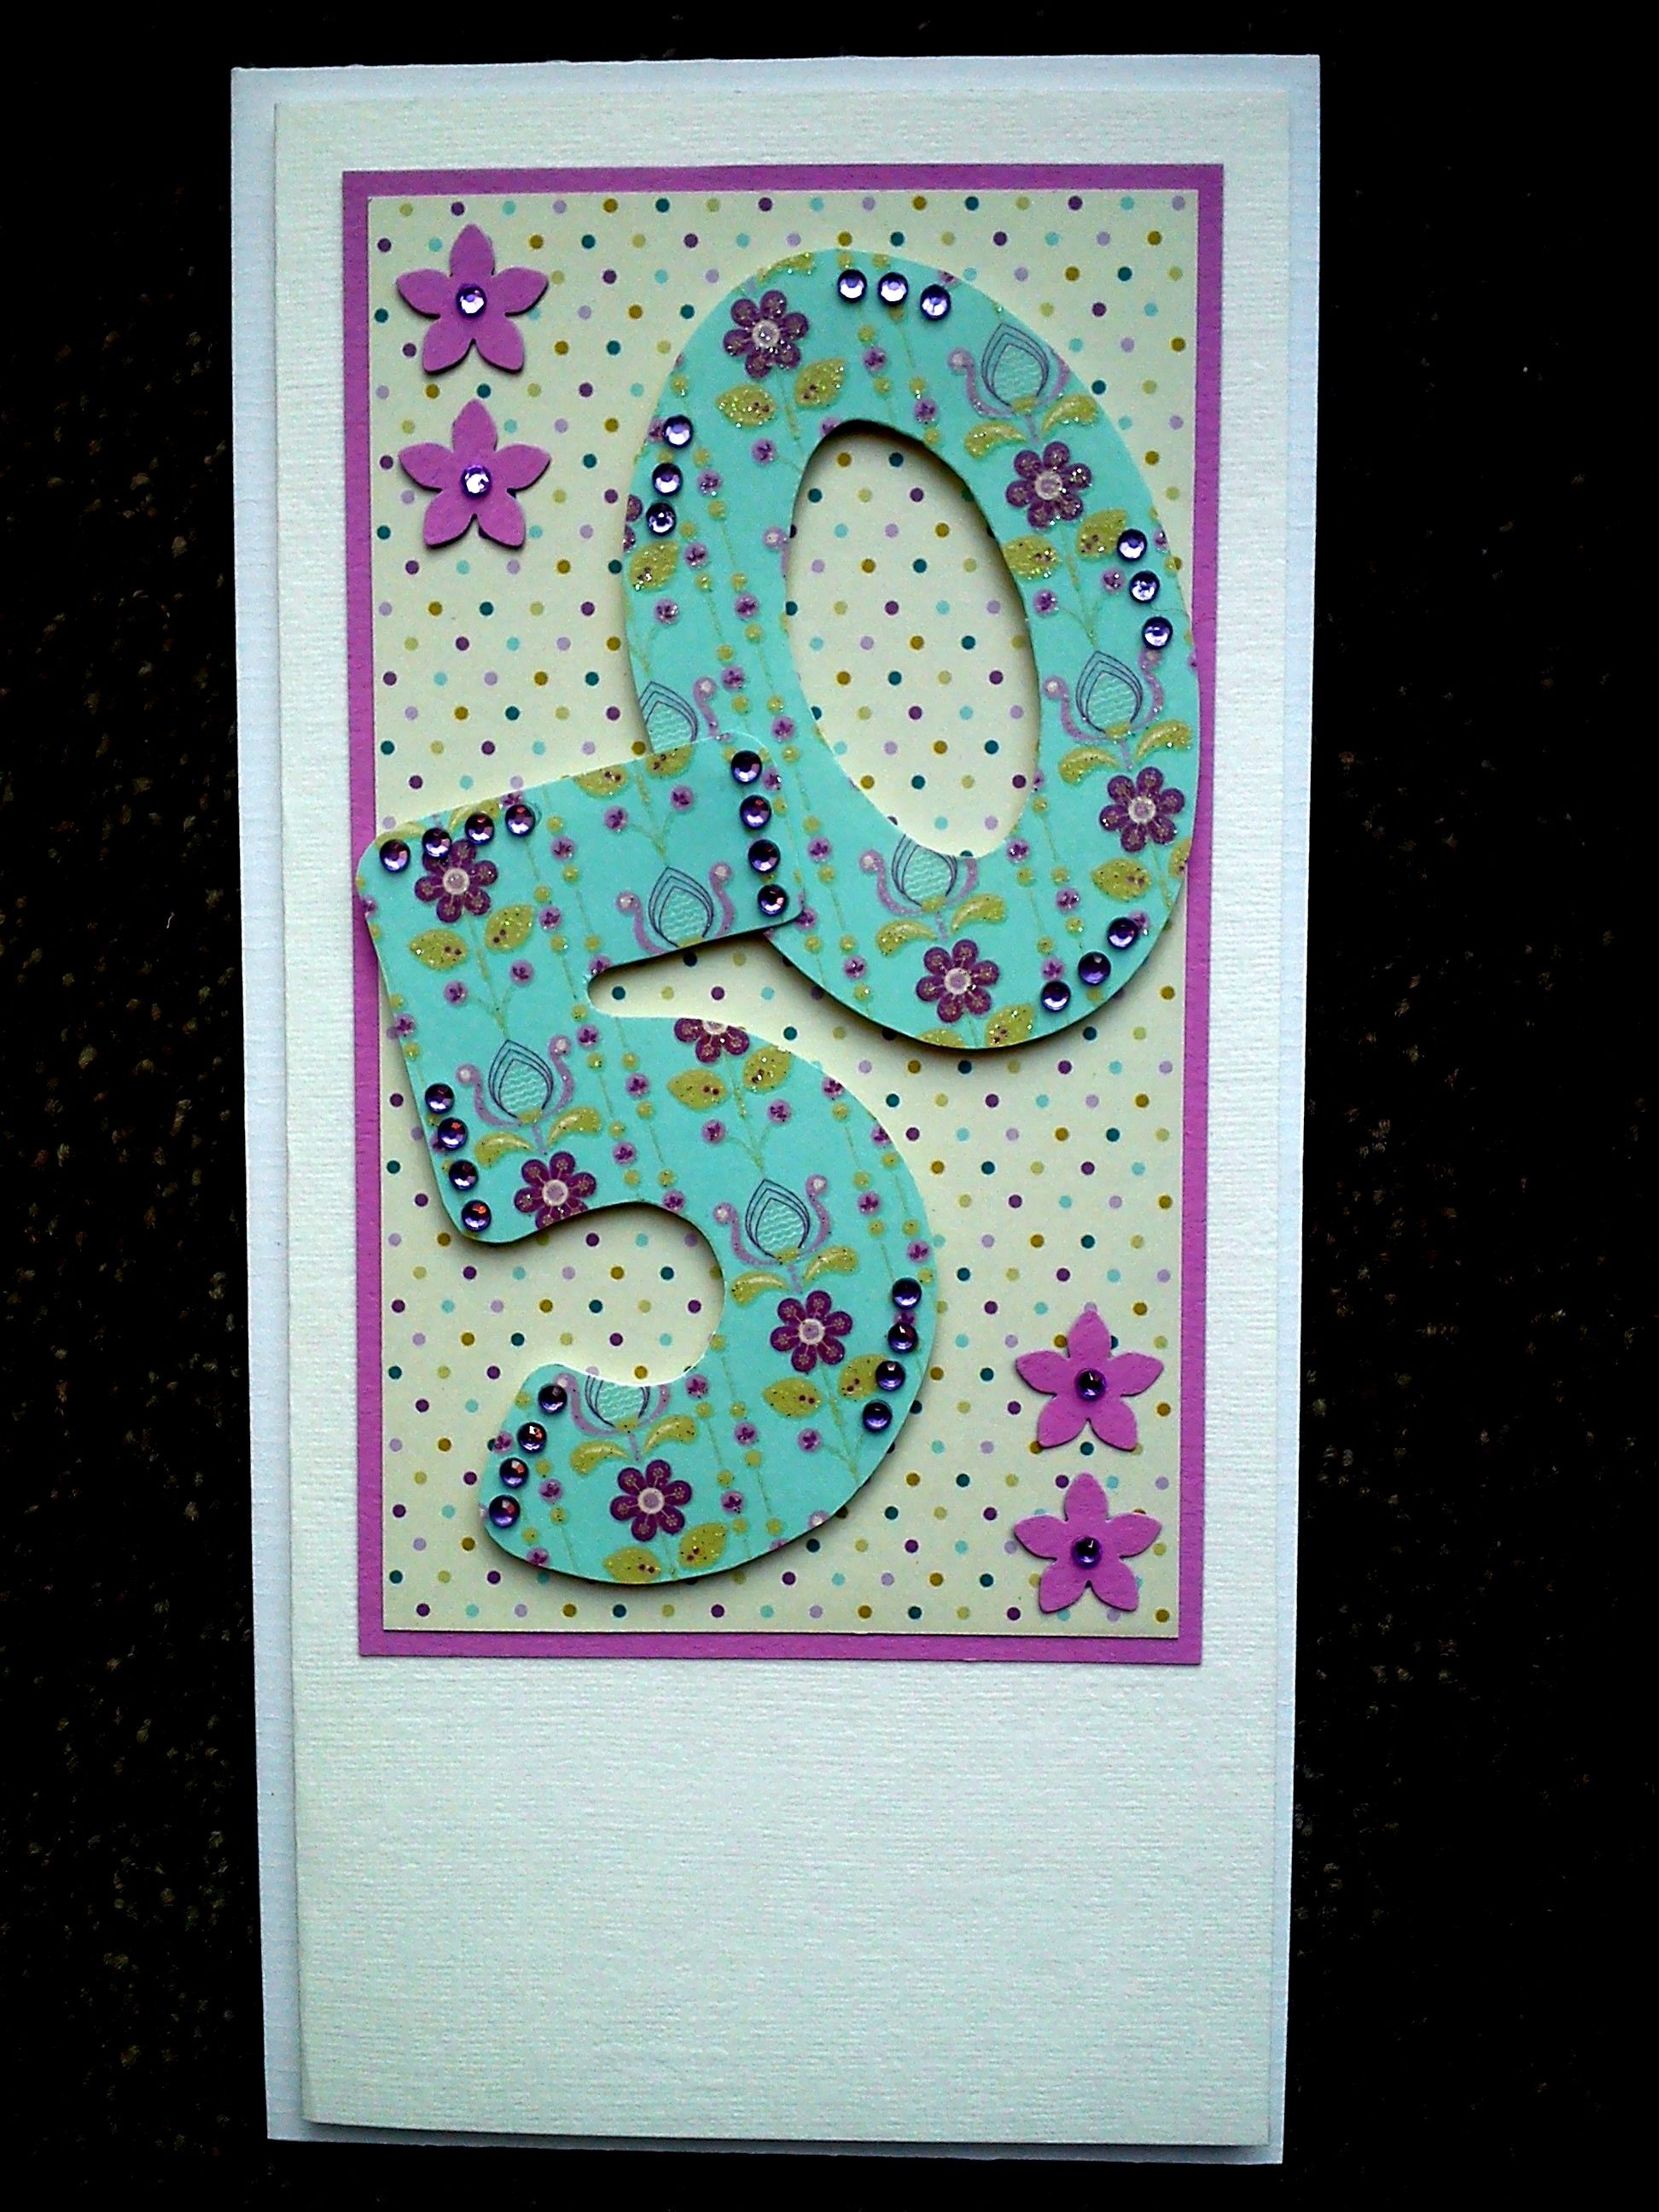 Handmade th birthday card made with pretty fabrics and embellished